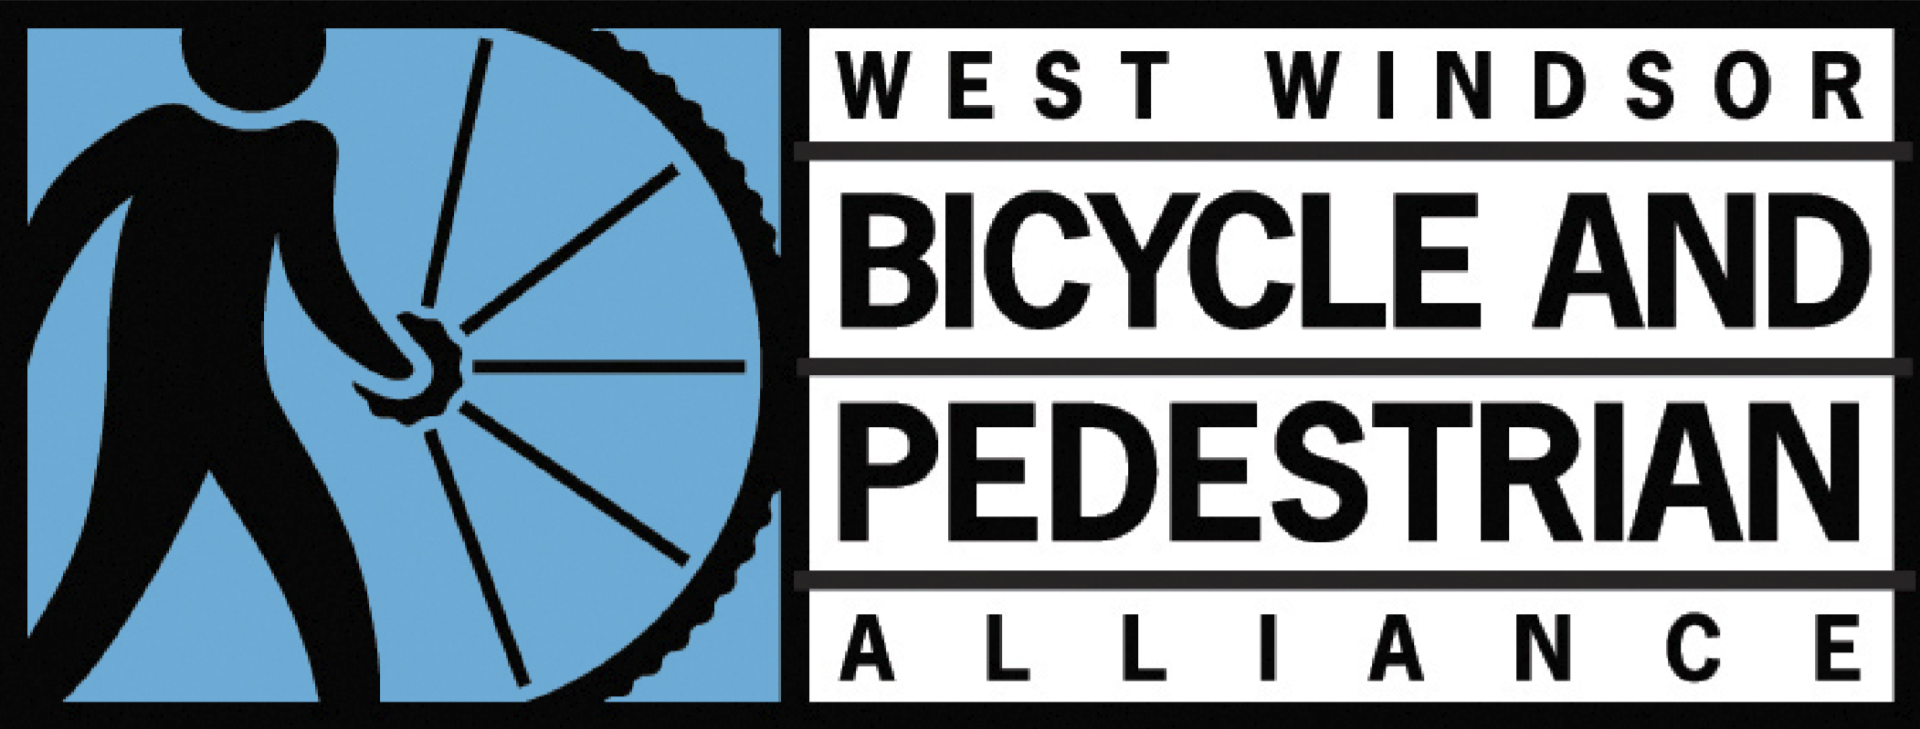 West Windsor Bicycle and Pedestrian Alliance